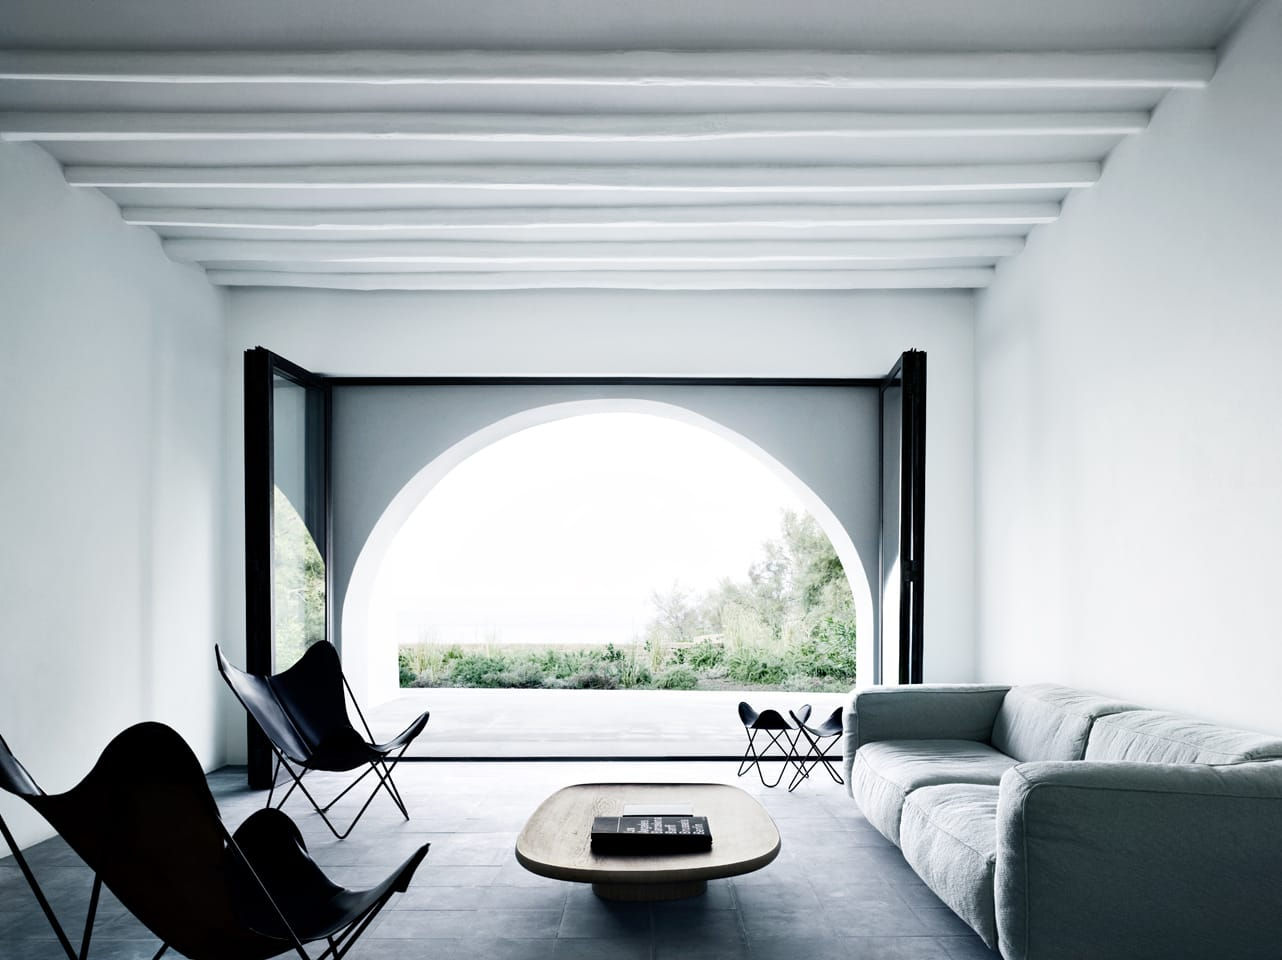 Interiors a collection curated by divisare for Tommaso sartori